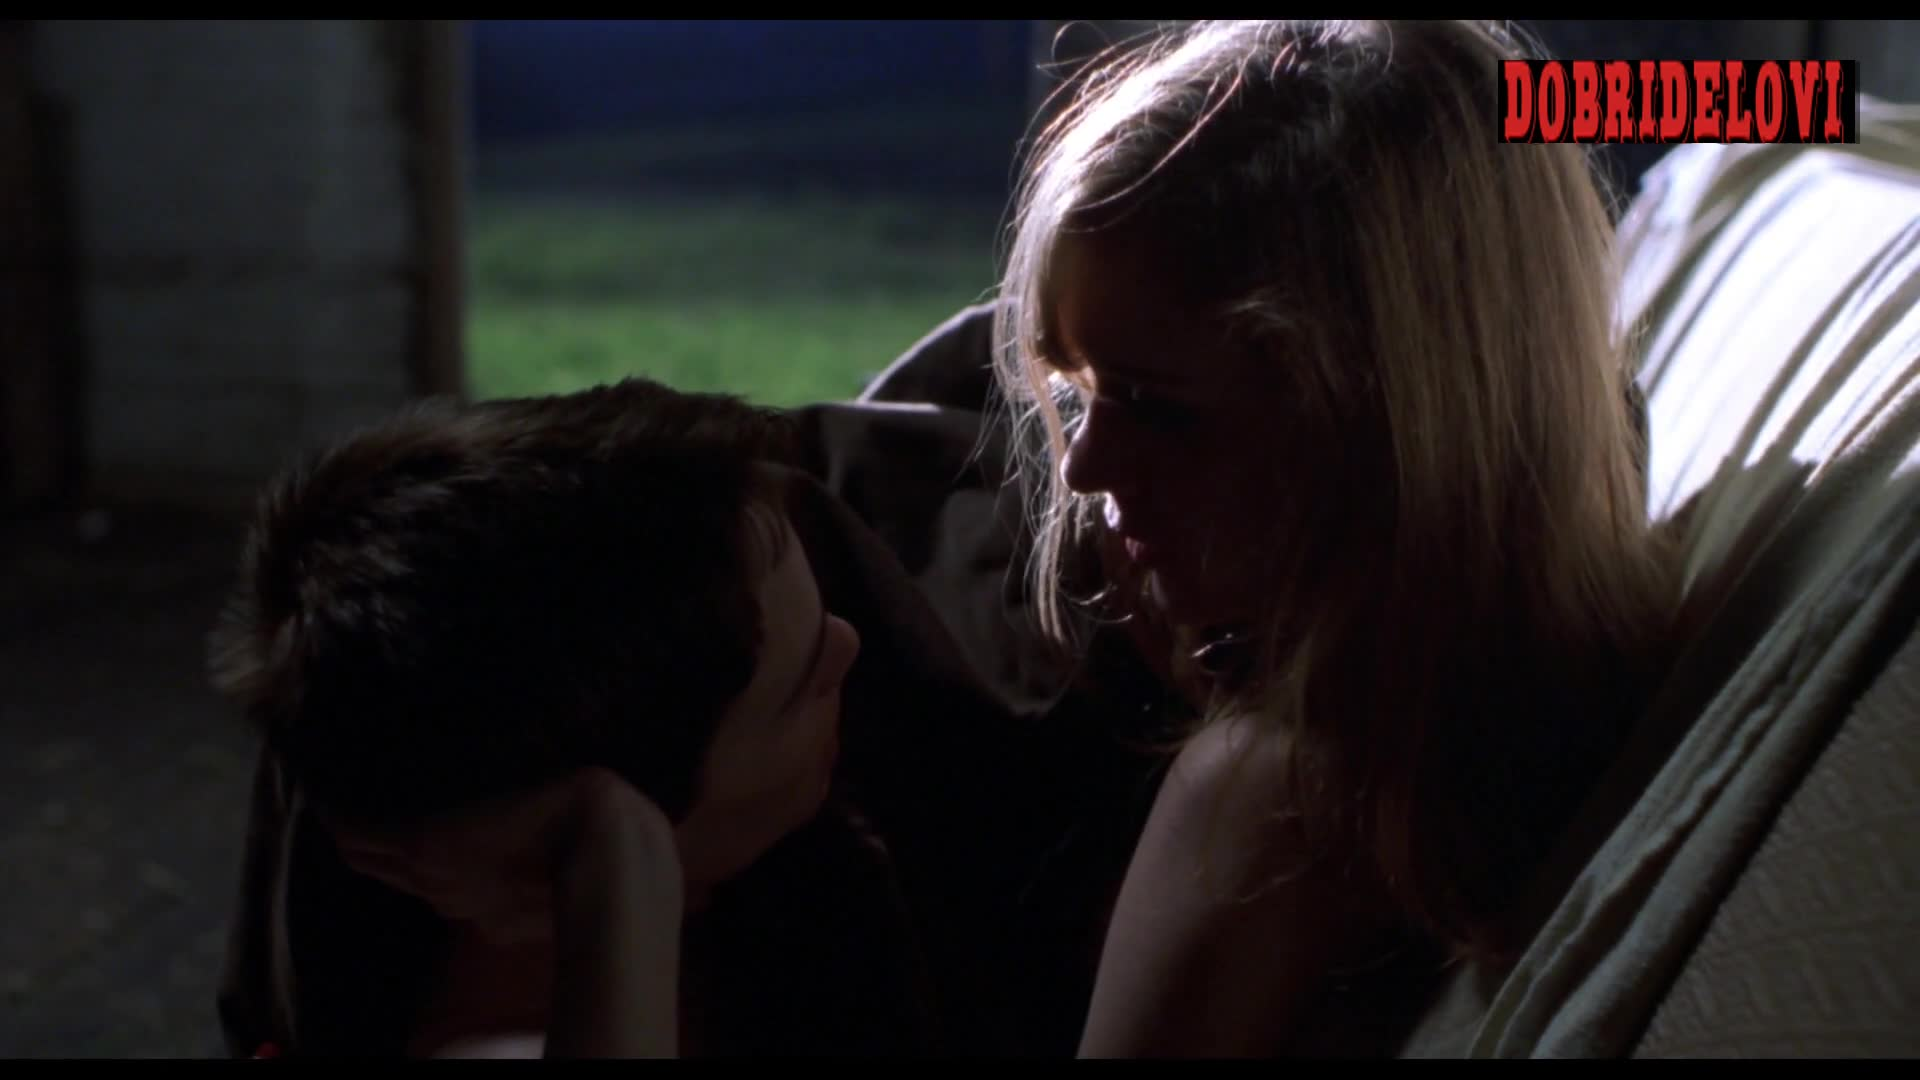 Chloë Sevigny and Hilary Swank after sex scene from Boys Don't Cry